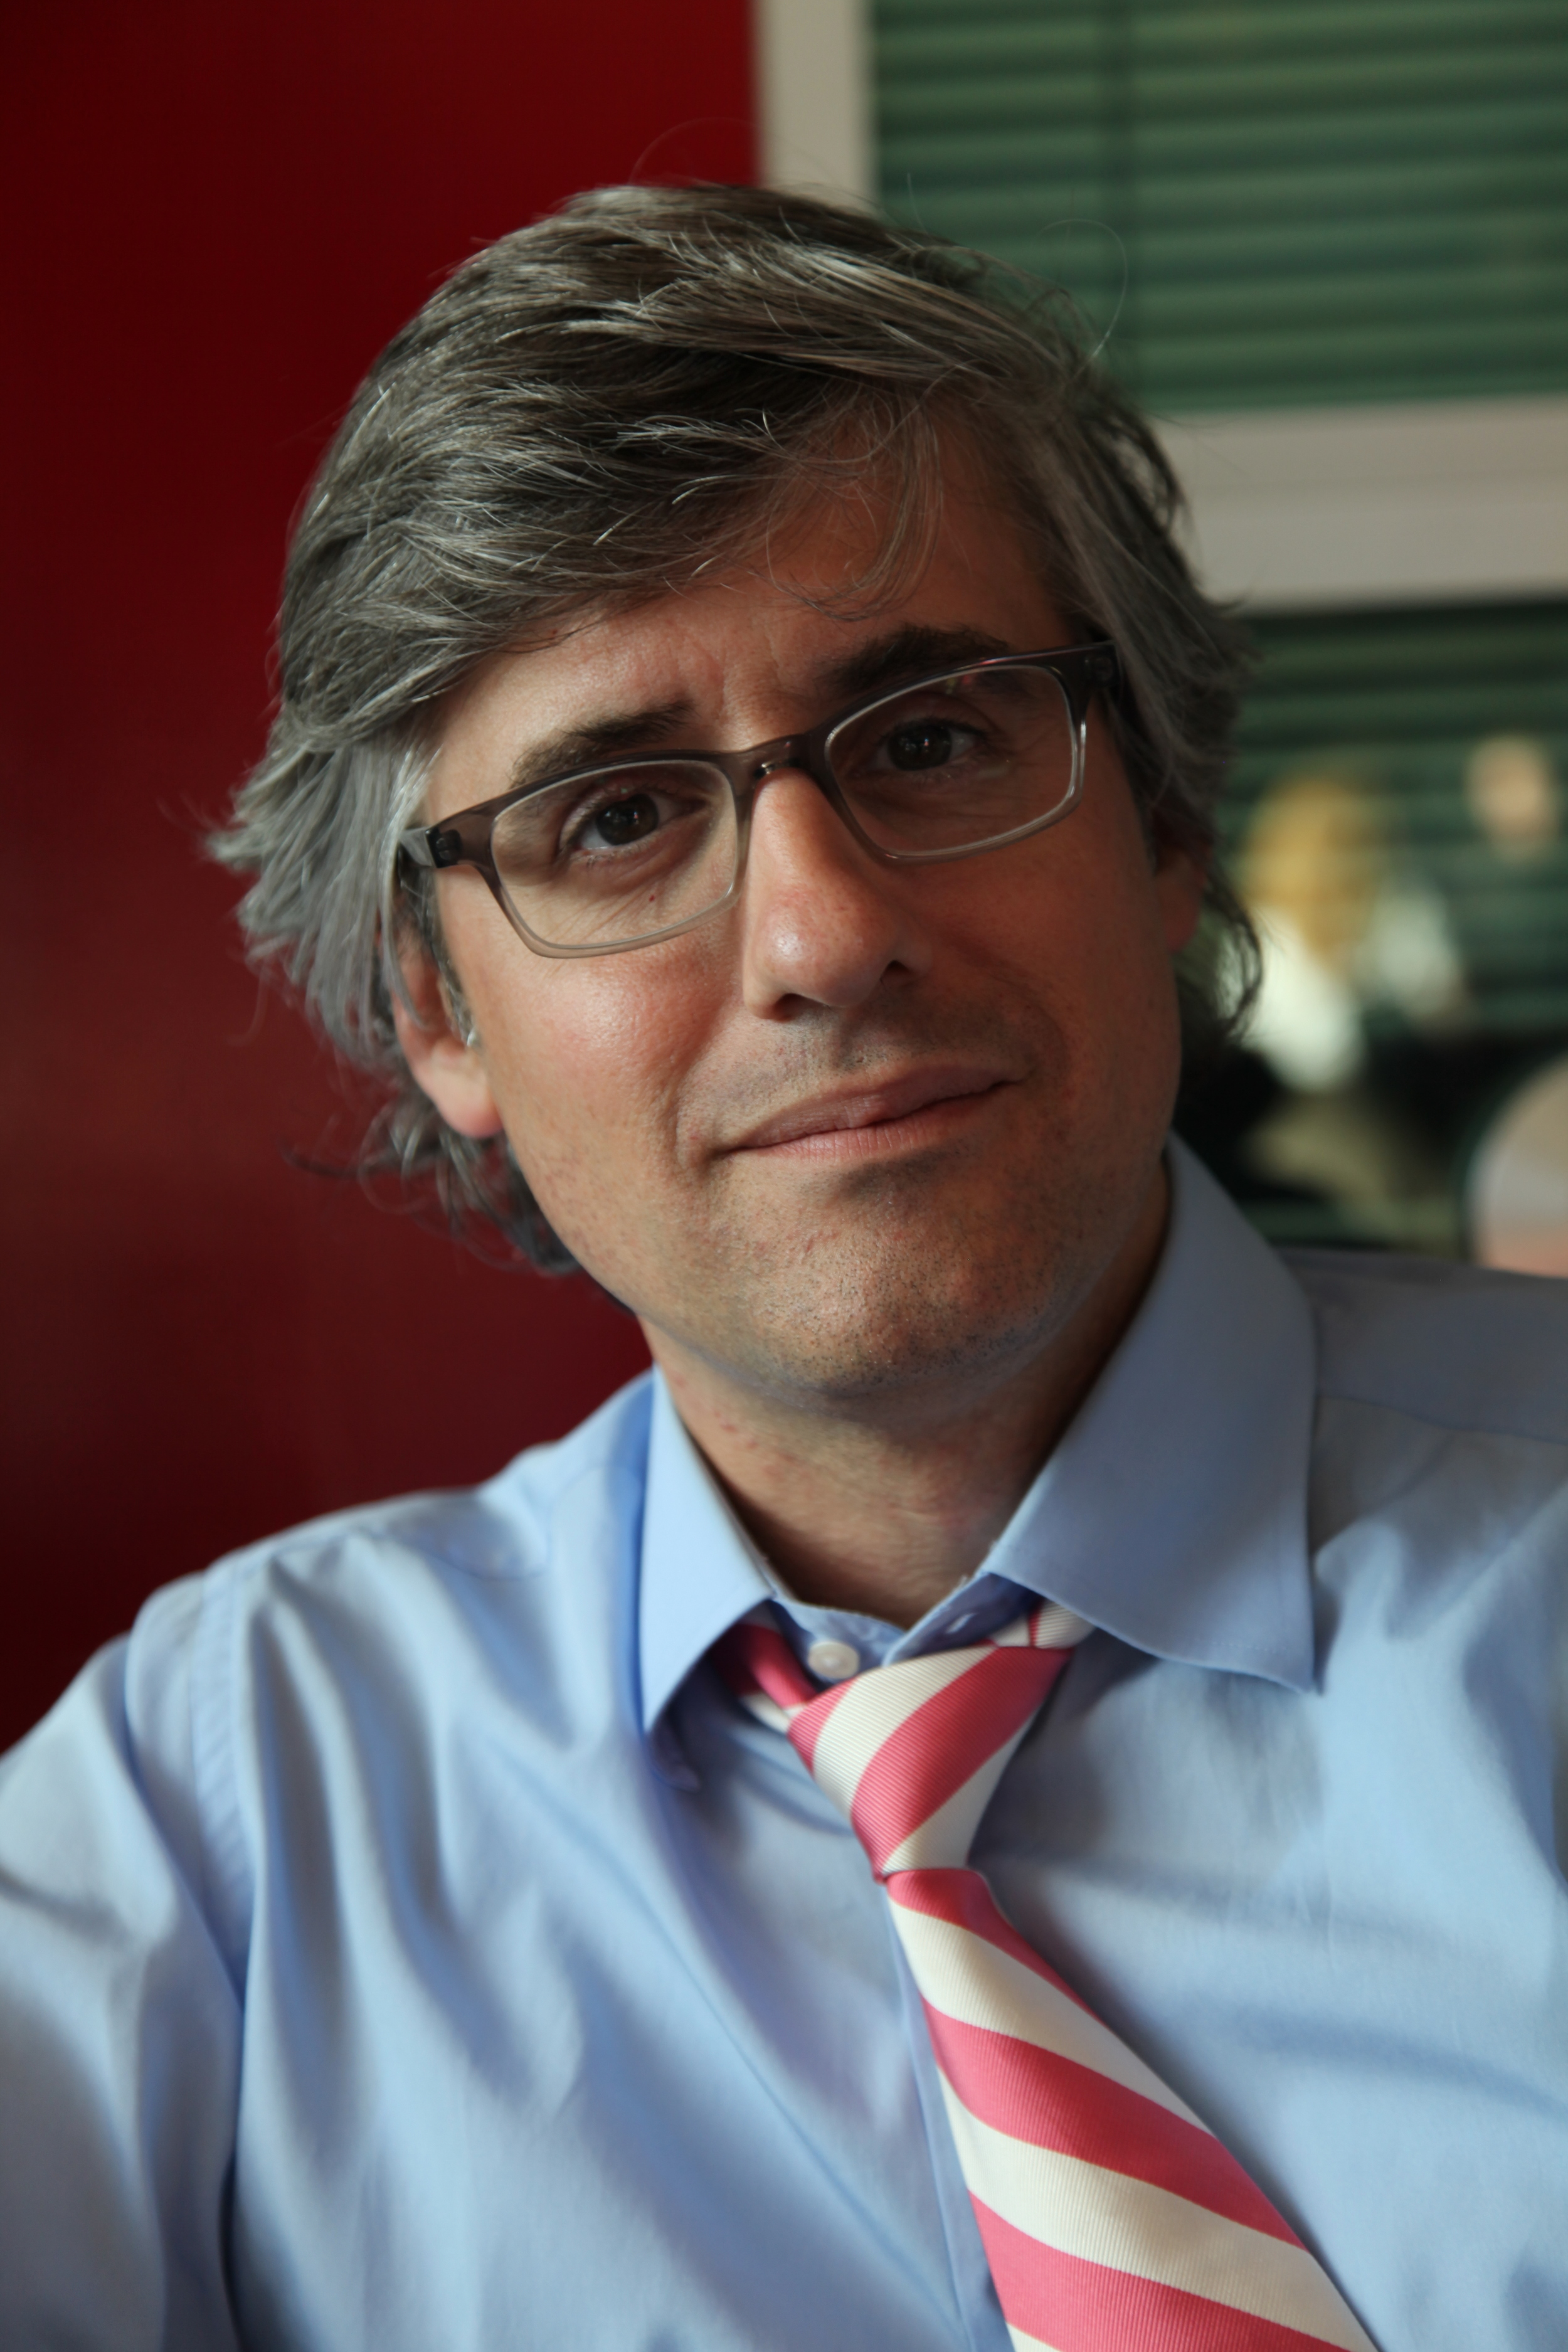 Mo Rocca - Photos by Tanner Latham